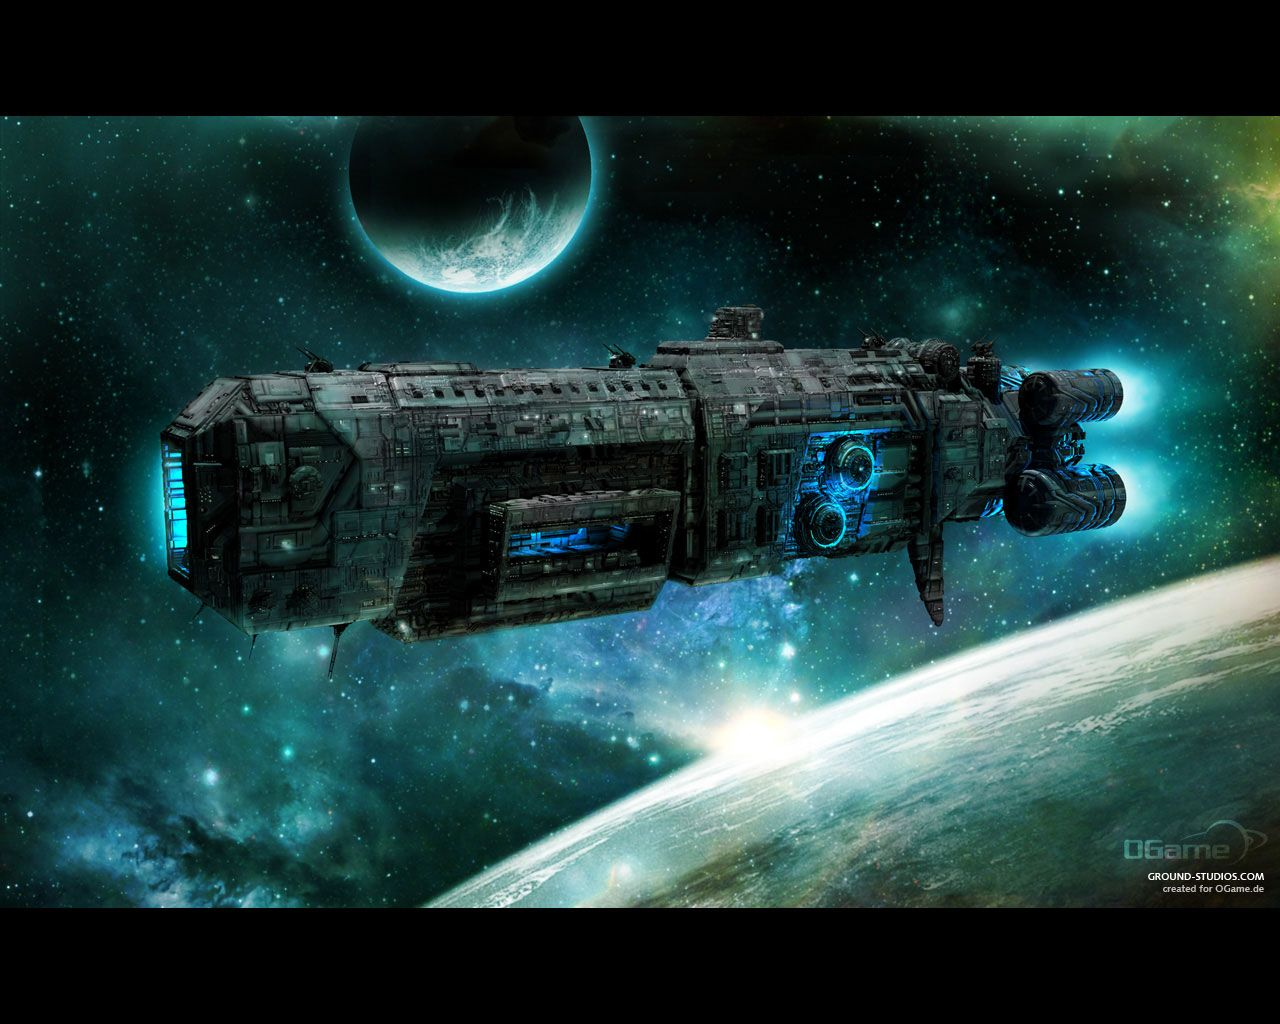 Black themed spaceship conceptual artwork and wallpapers 1 design - 35 Awesome Sci Fi Spaceship Conceptual Artwork In Hd